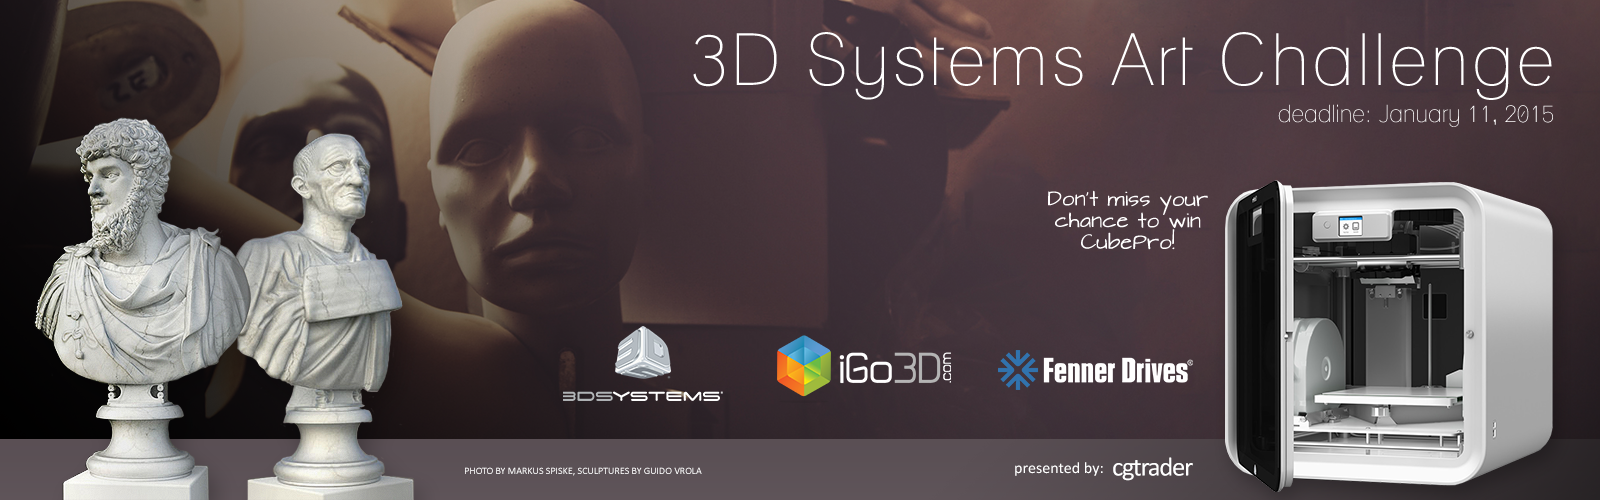 3D Systems Art Challenge